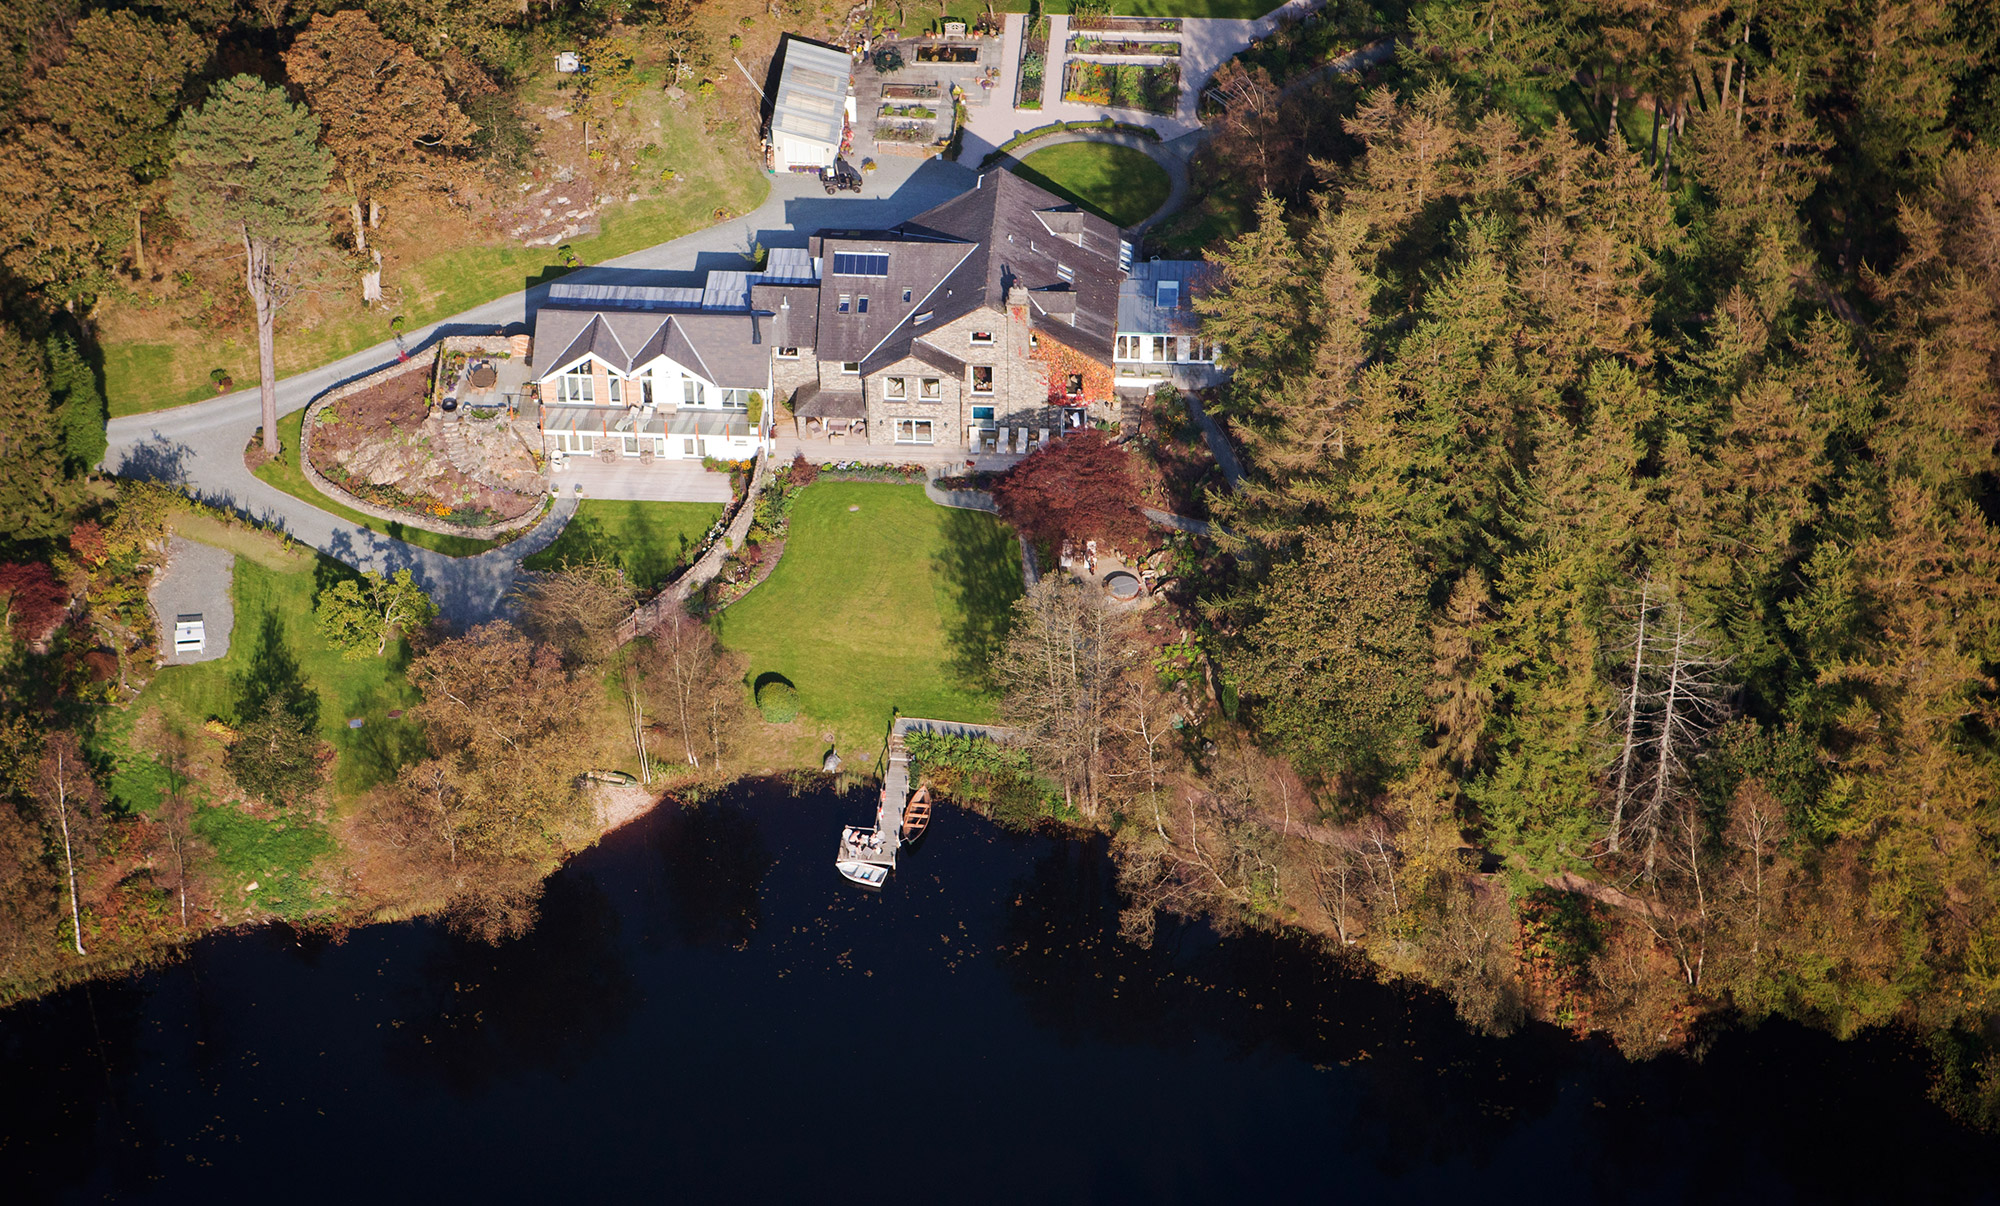 Ben Barden Photography - Lake House - Lake District - Aerial Shot